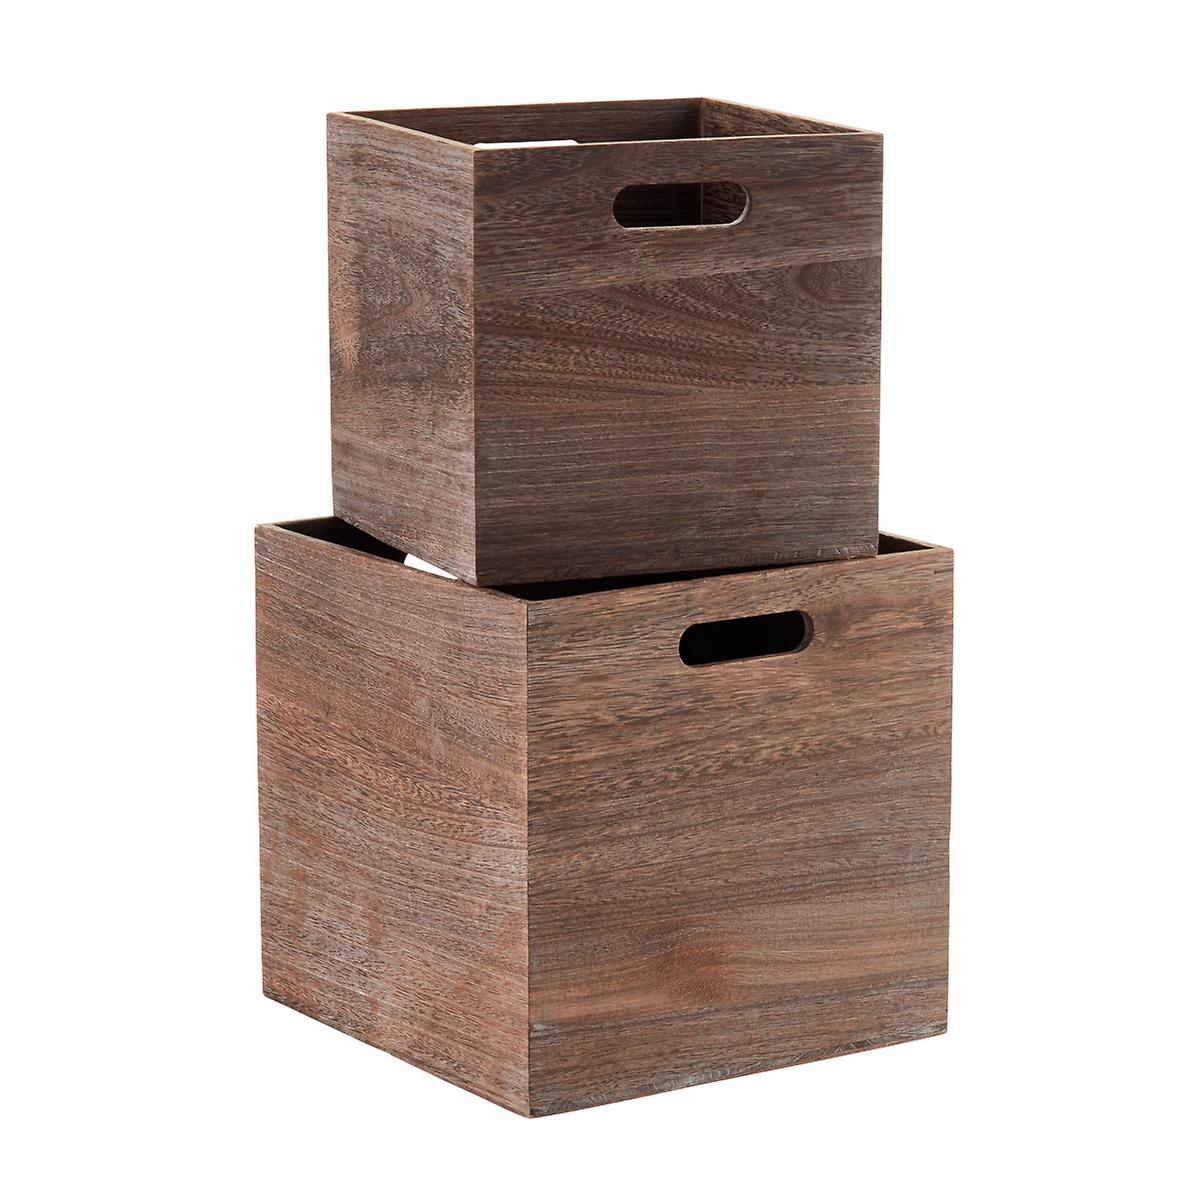 Famous Feathergrain Wooden Storage Cubes with Handles | The Container Store SP02